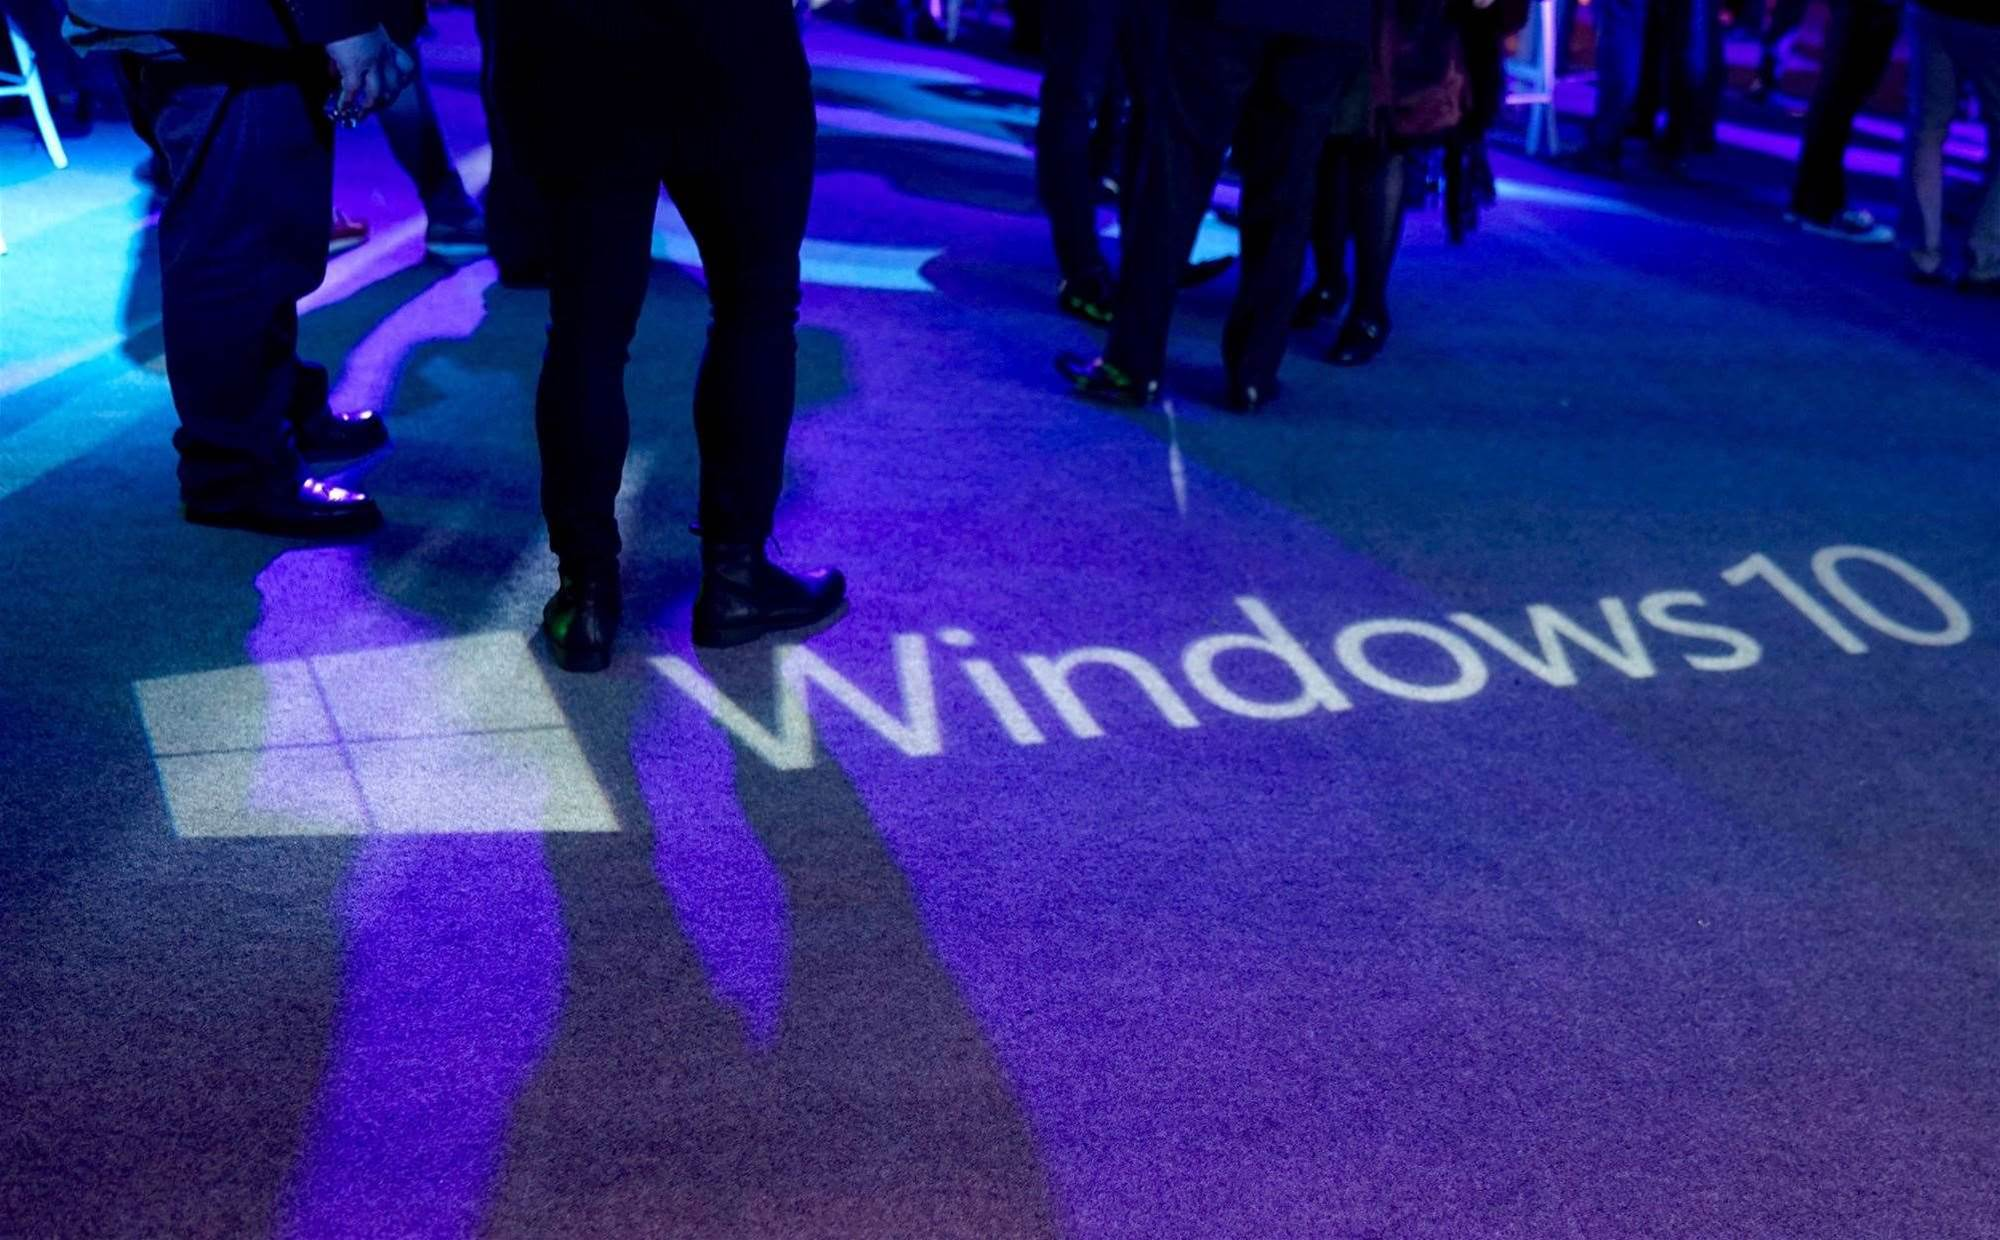 Microsoft pushes 'mixed reality' with next Windows 10 update